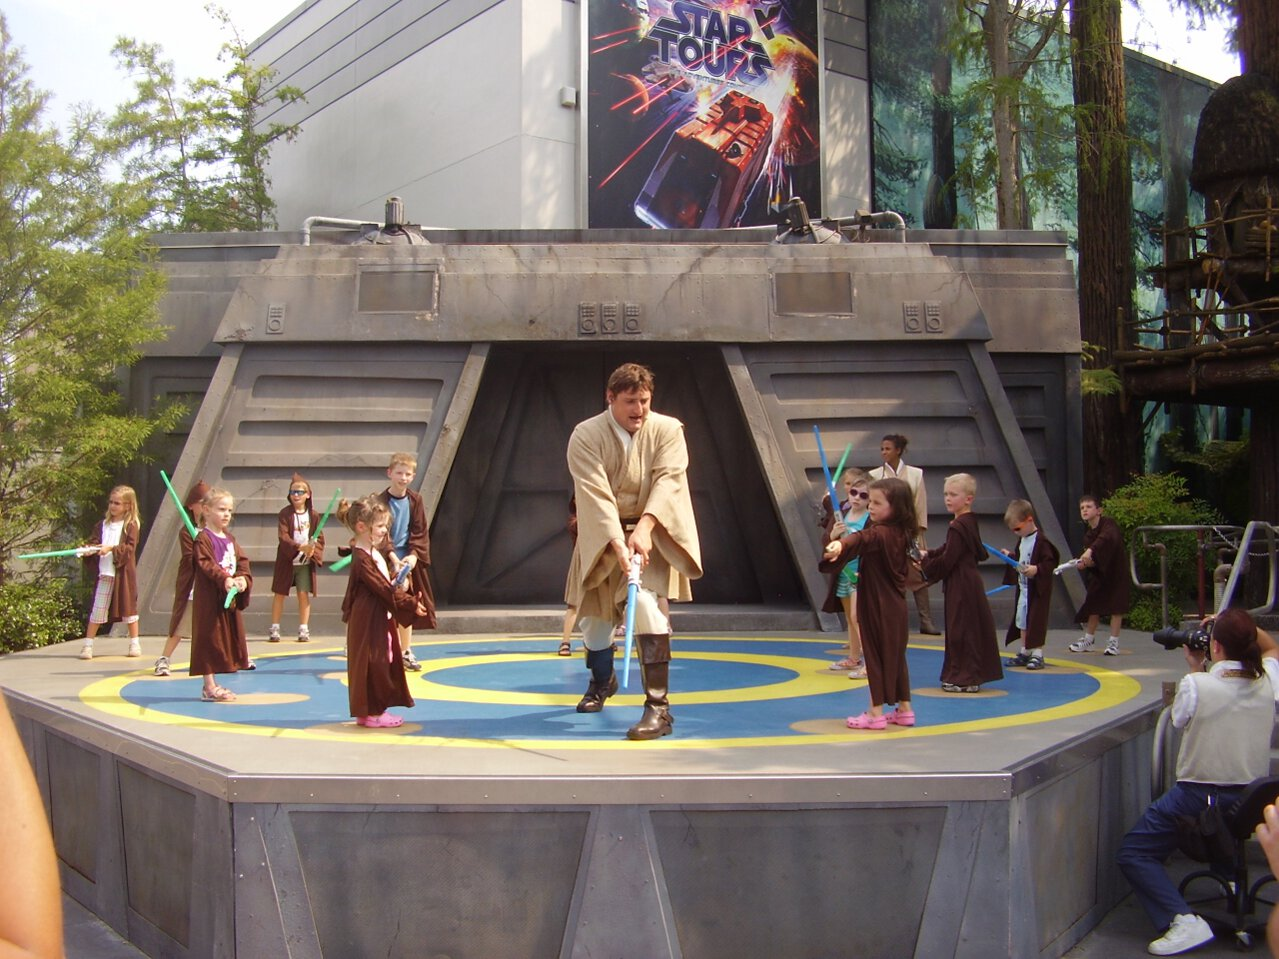 Star Tours - The Adventures Continue (10)